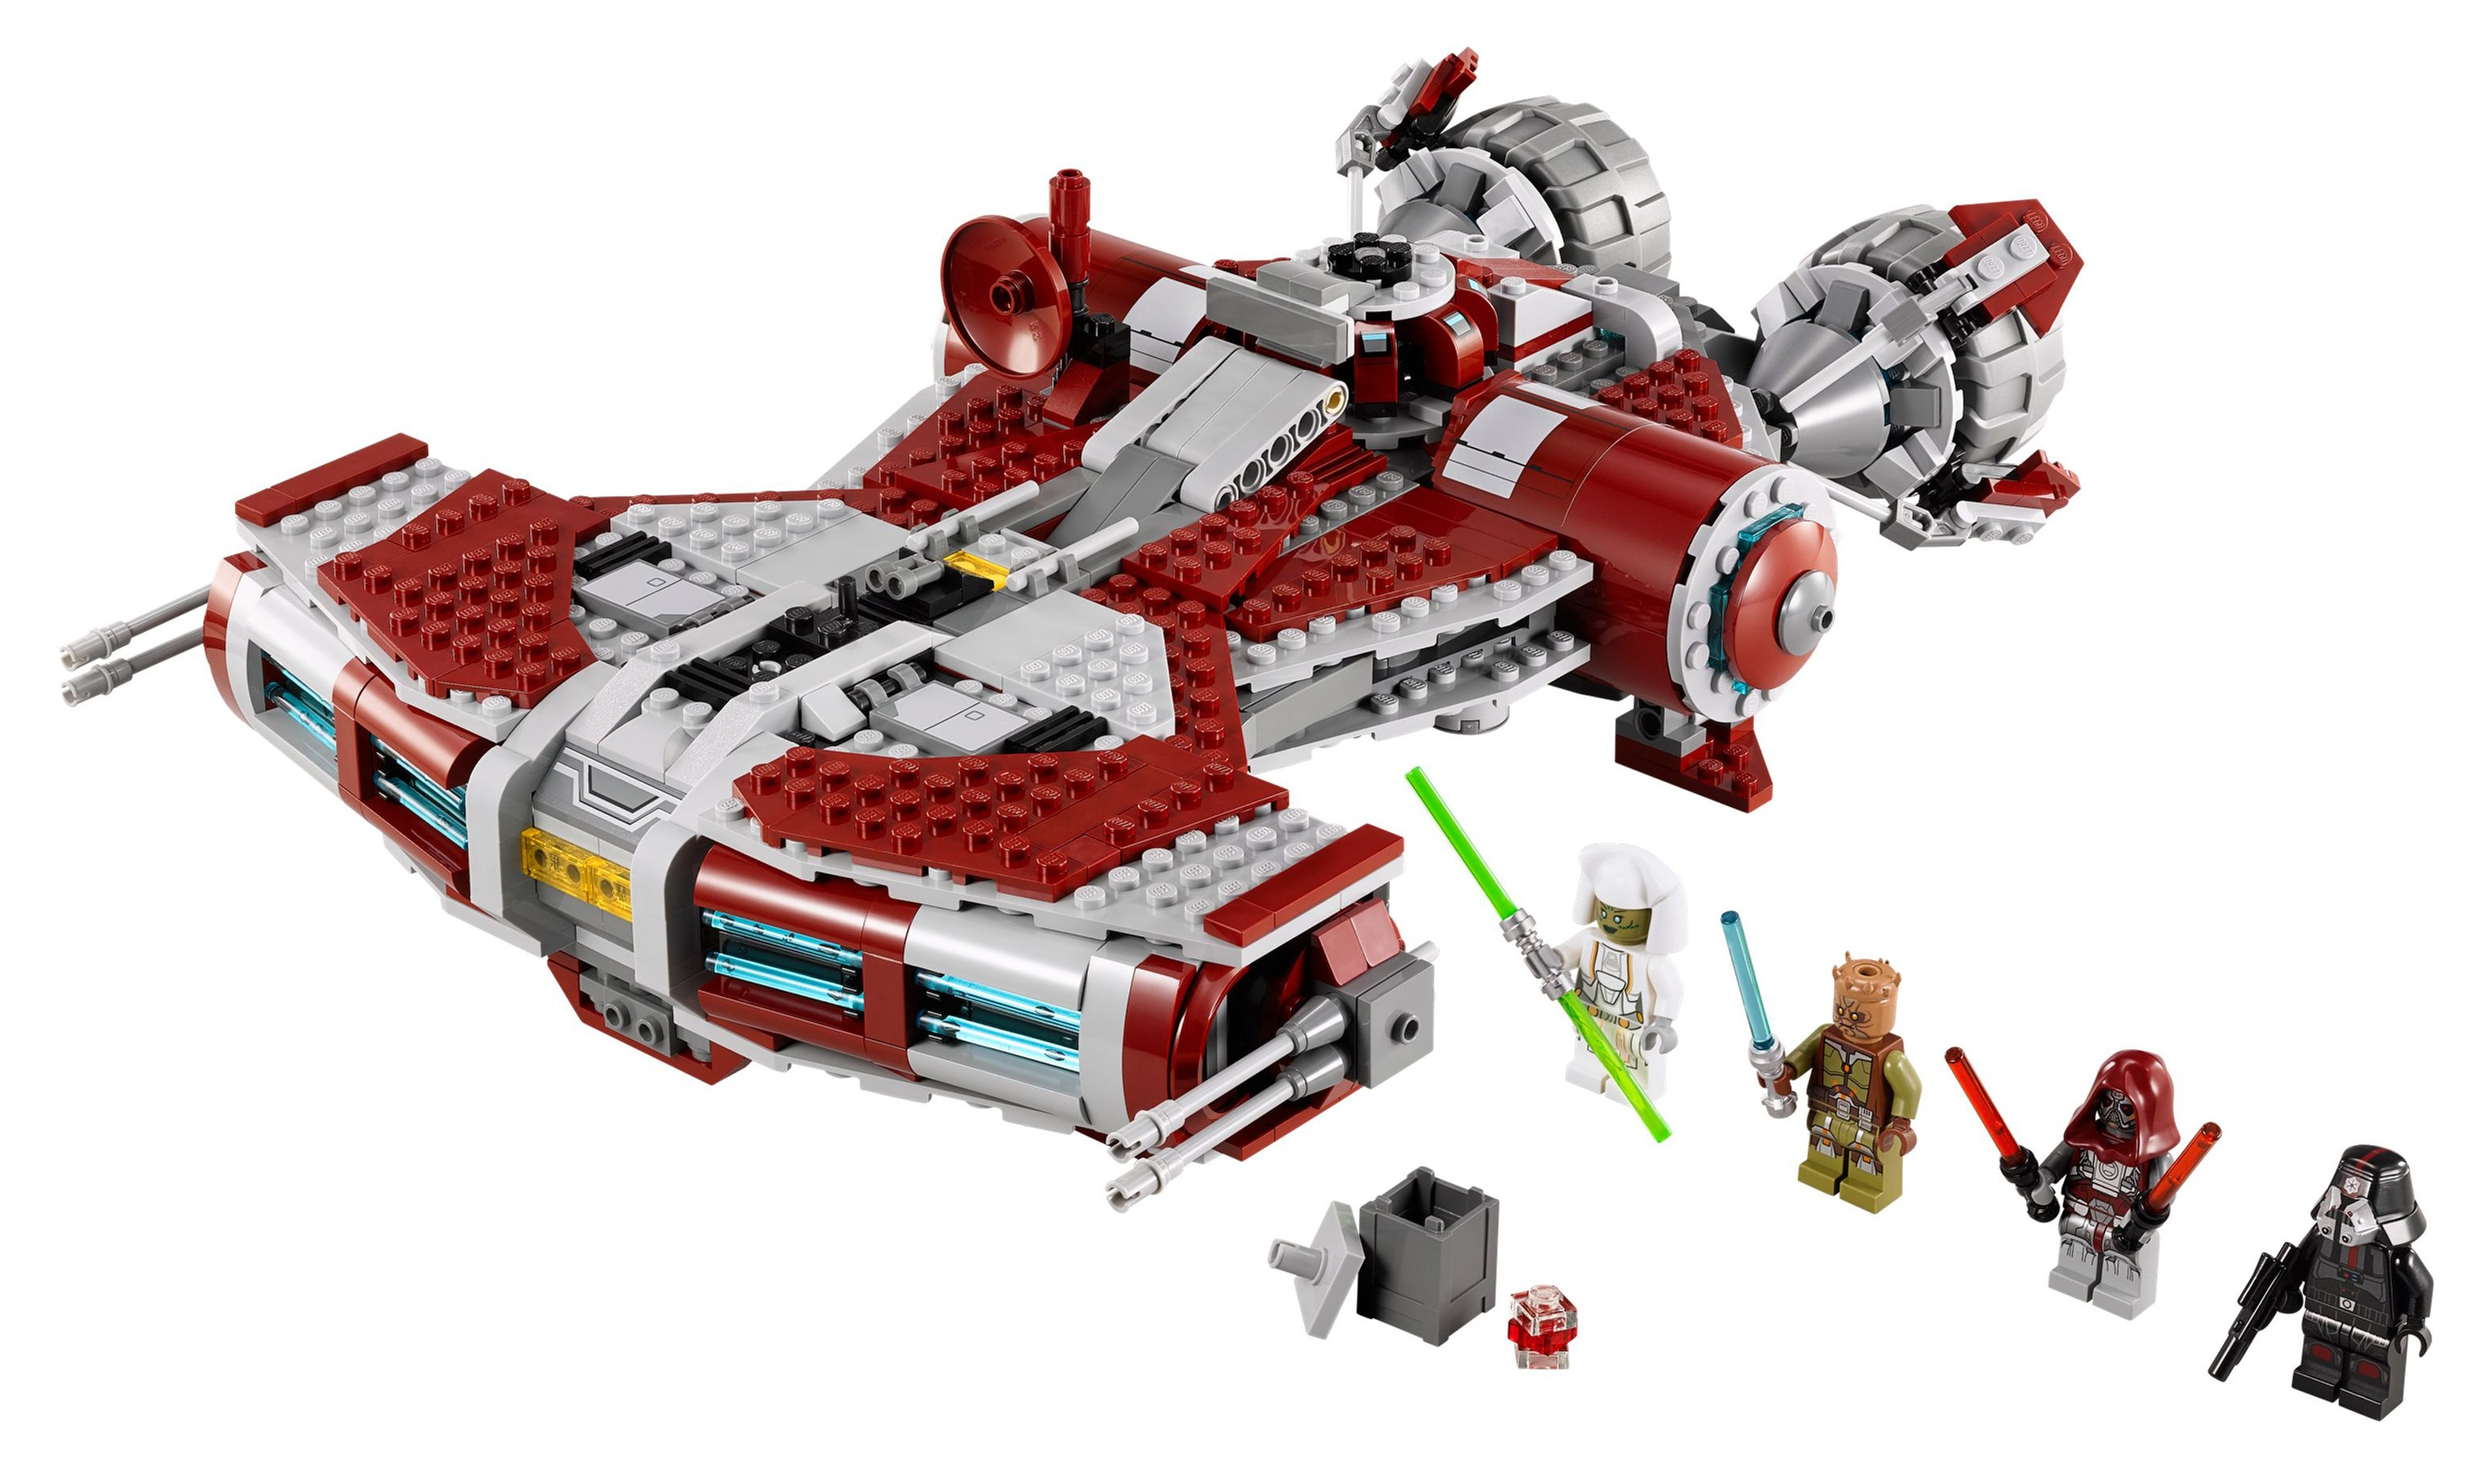 75025 lego star wars jedi defender class cruiser with the old republic